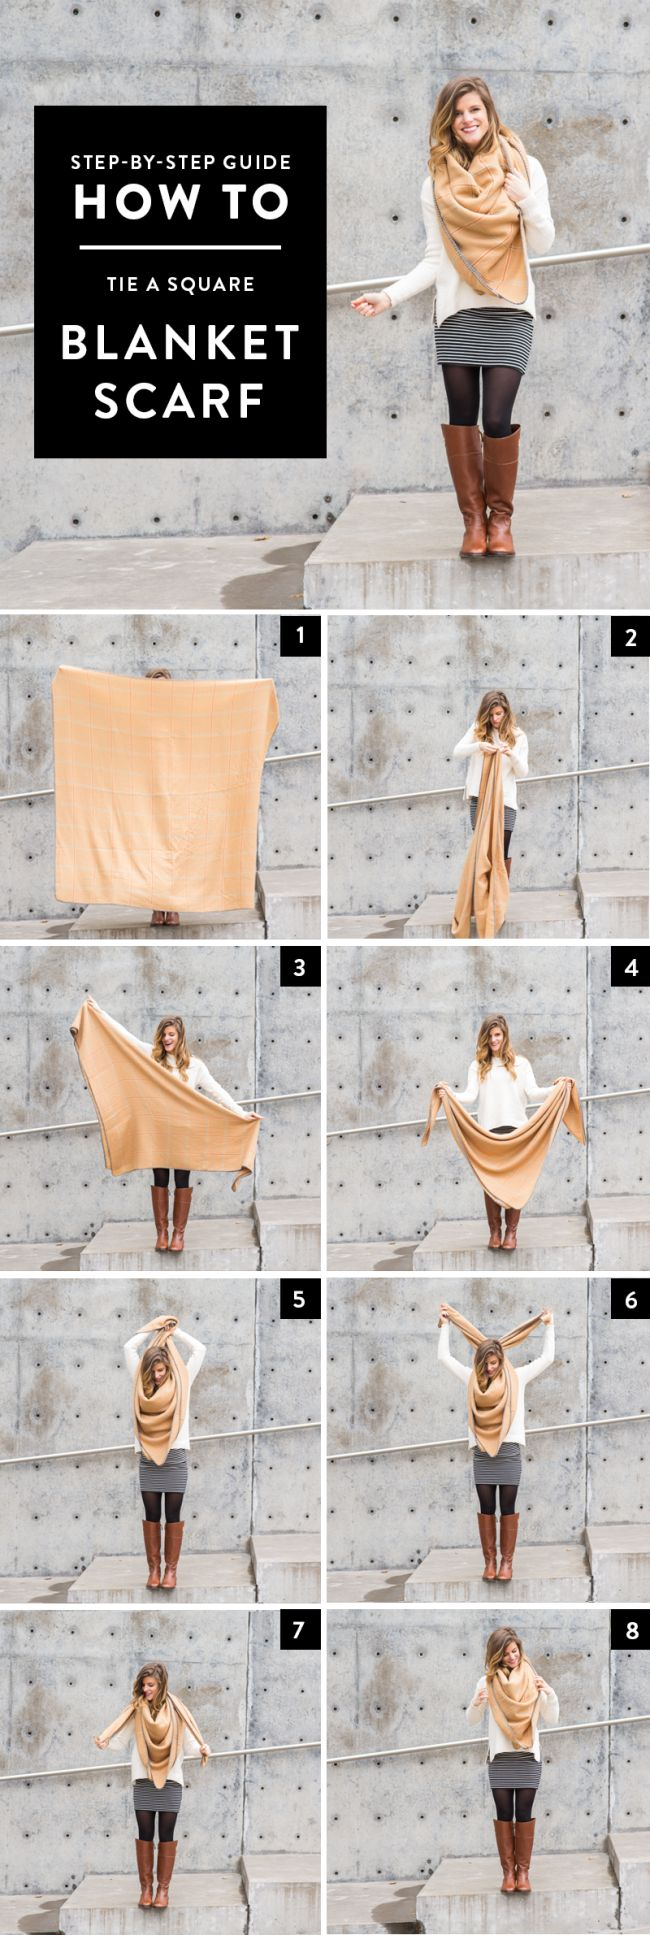 How to Tie a Square Blanket Scarf // step by step tutorial via brighton the day blog